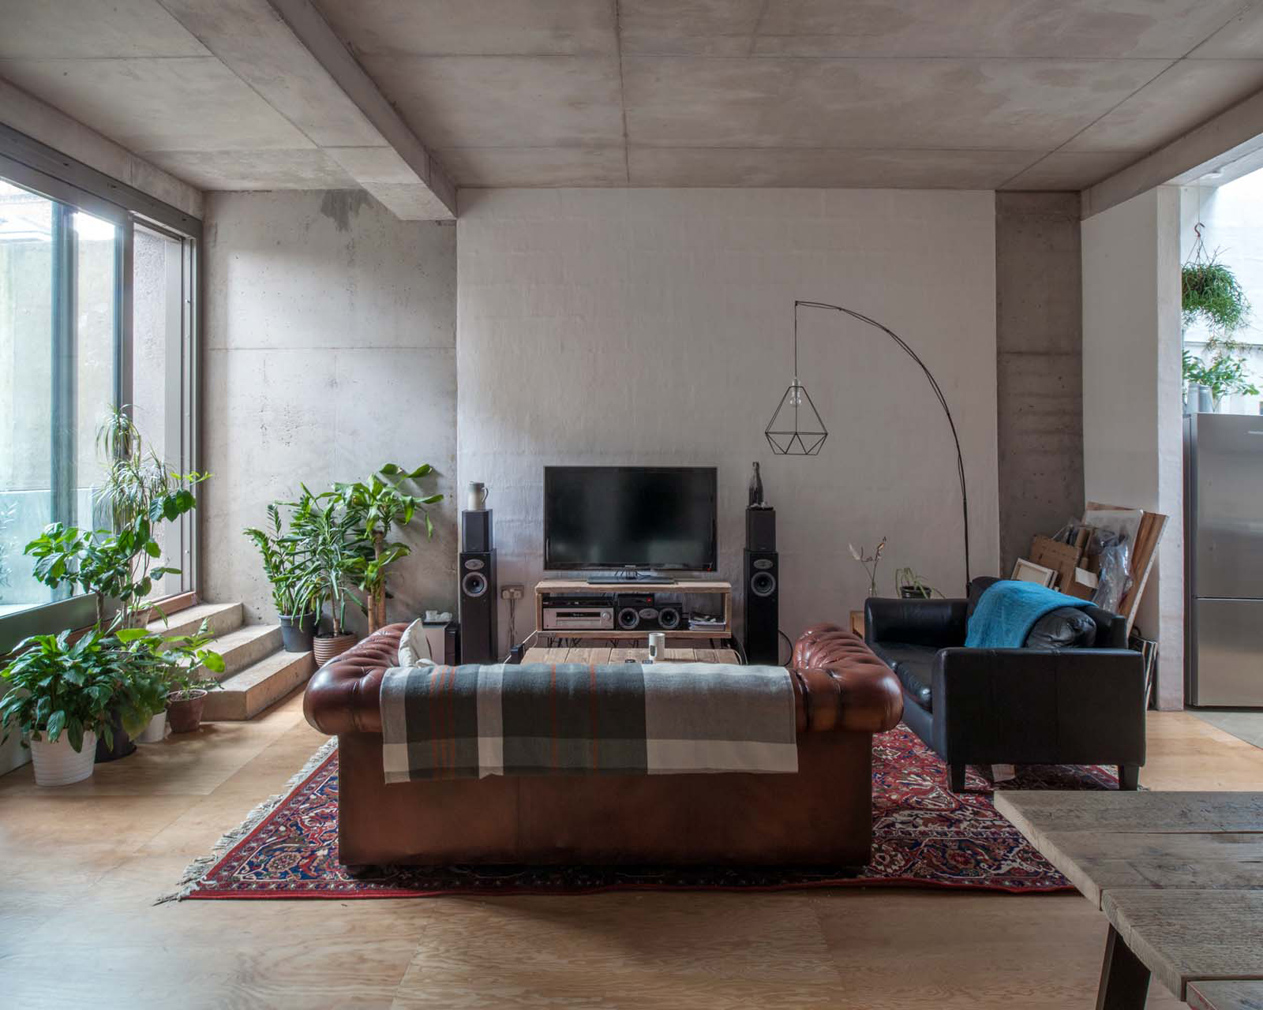 Open House London 2018 preview: Back Stone House by 6a Architects